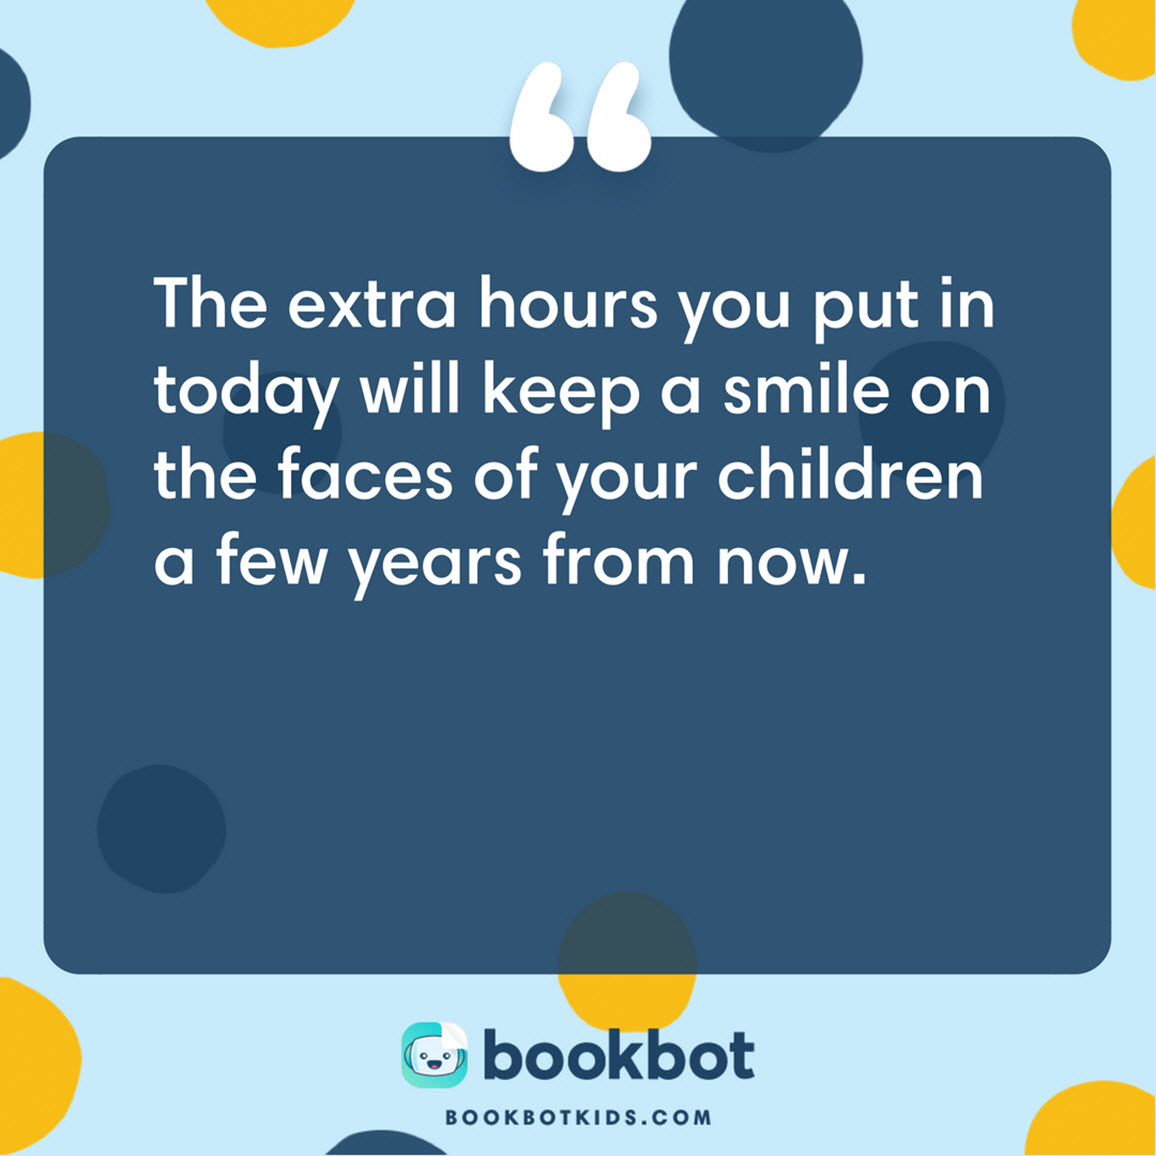 The extra hours you put in today will keep a smile on the faces of your children a few years from now.